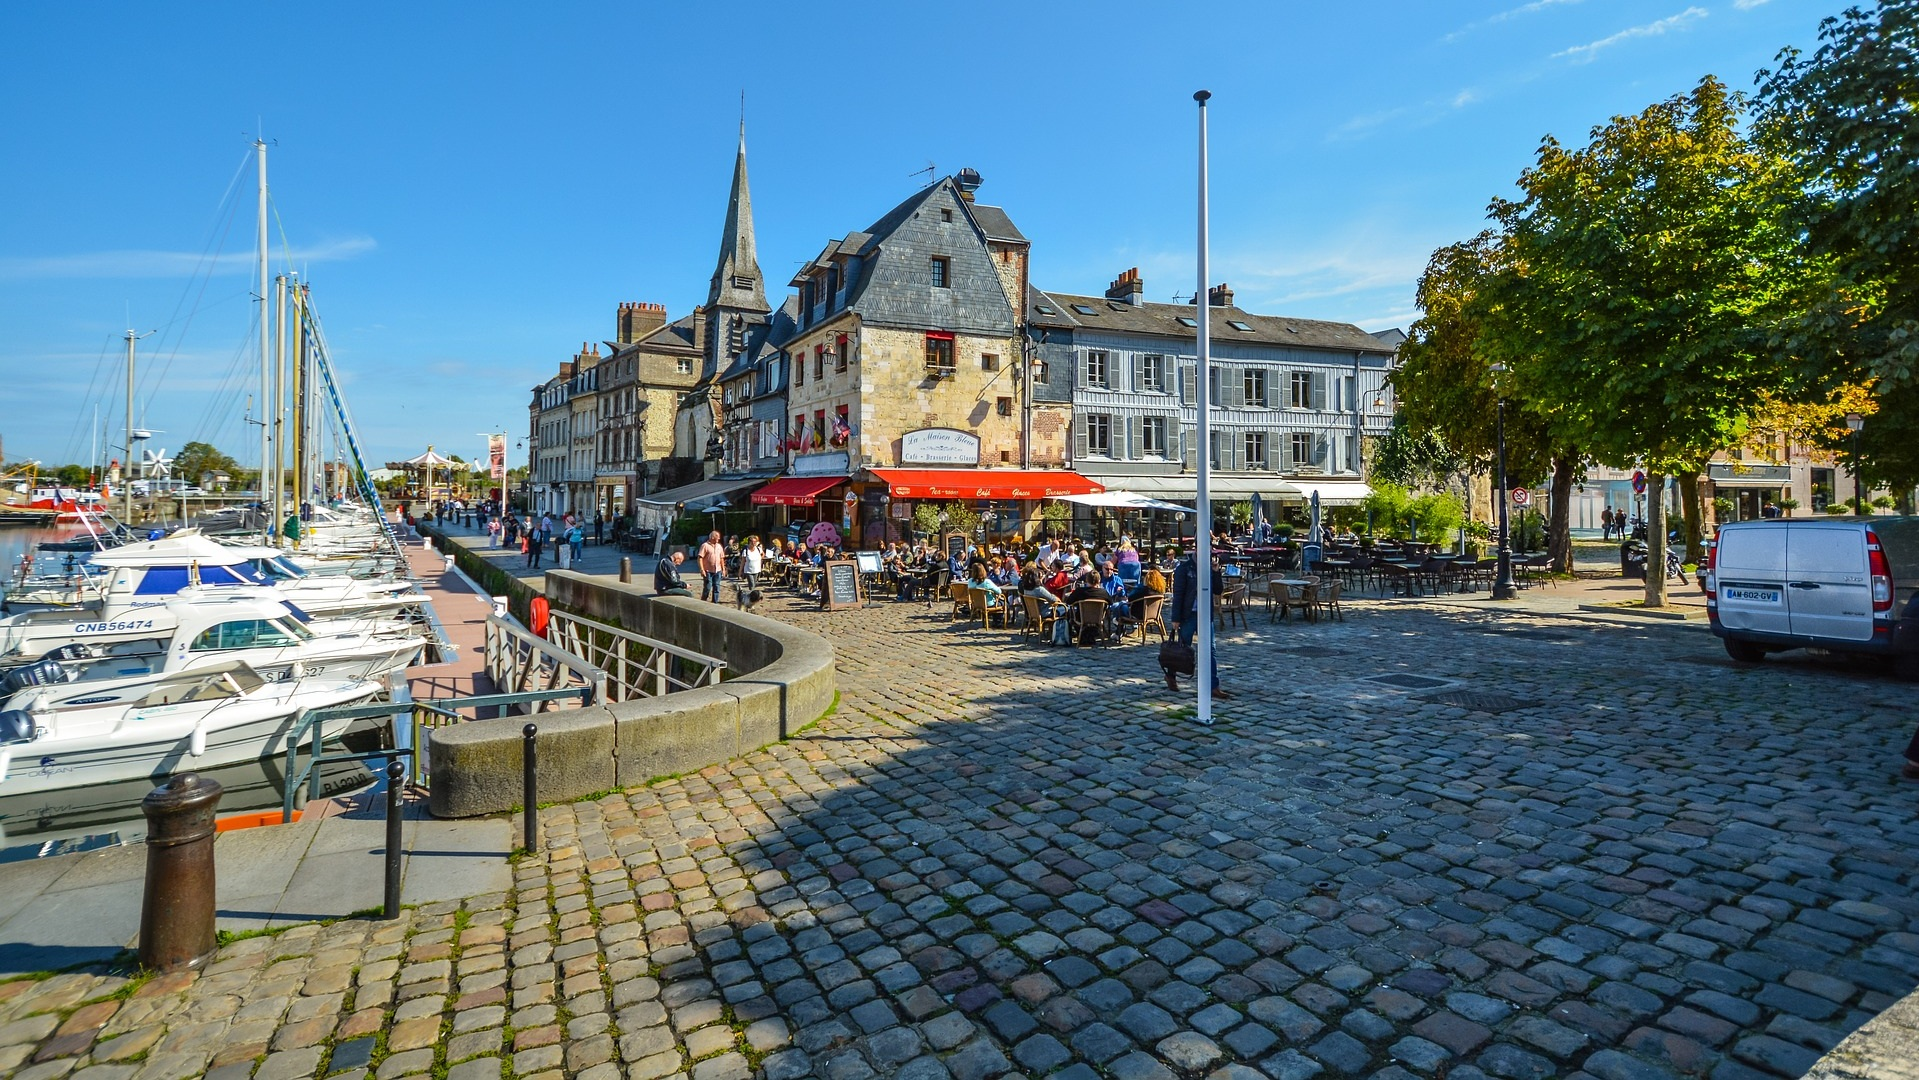 Marina Restaurants - Honfleur, France